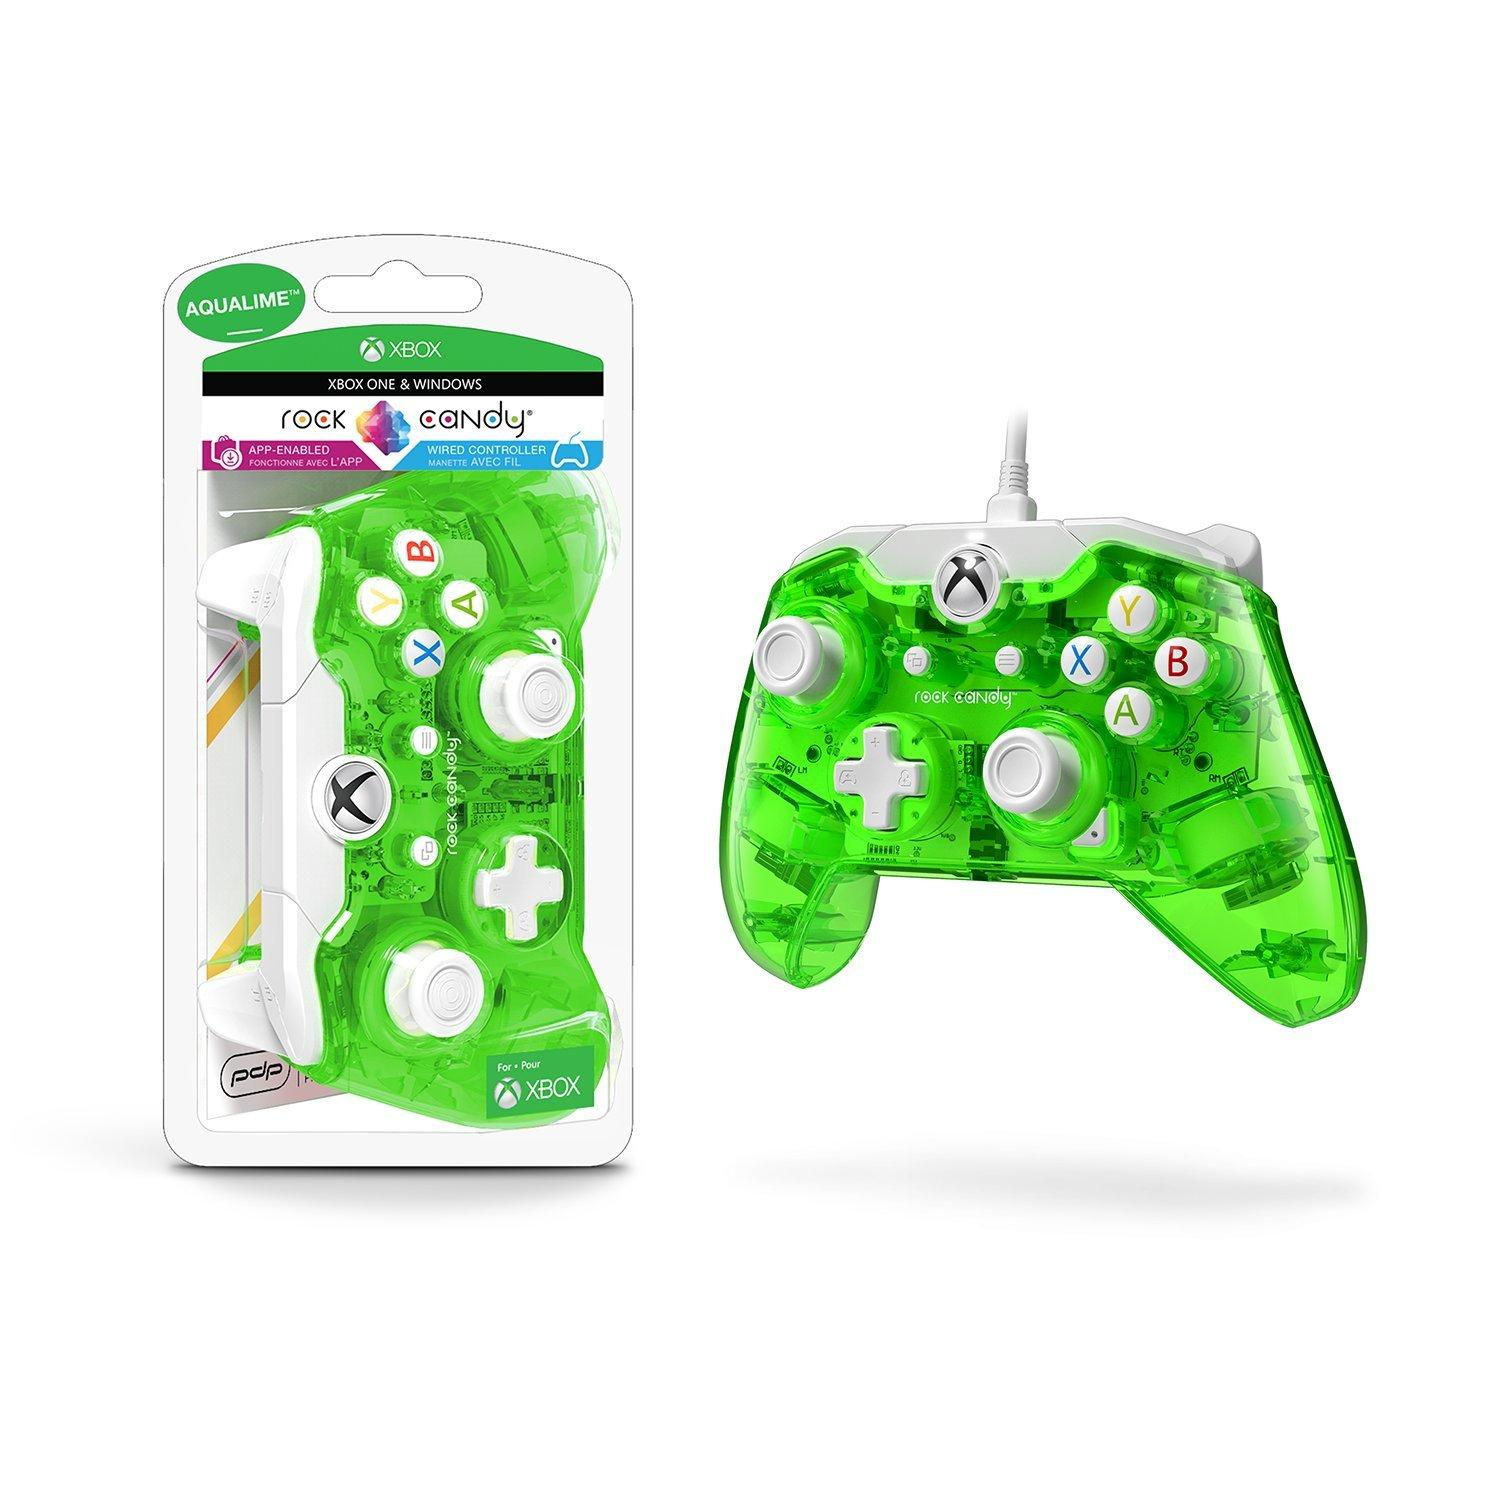 Xbox One Rock Candy Wired Controller - Aqualime | Xbox One | GameStop